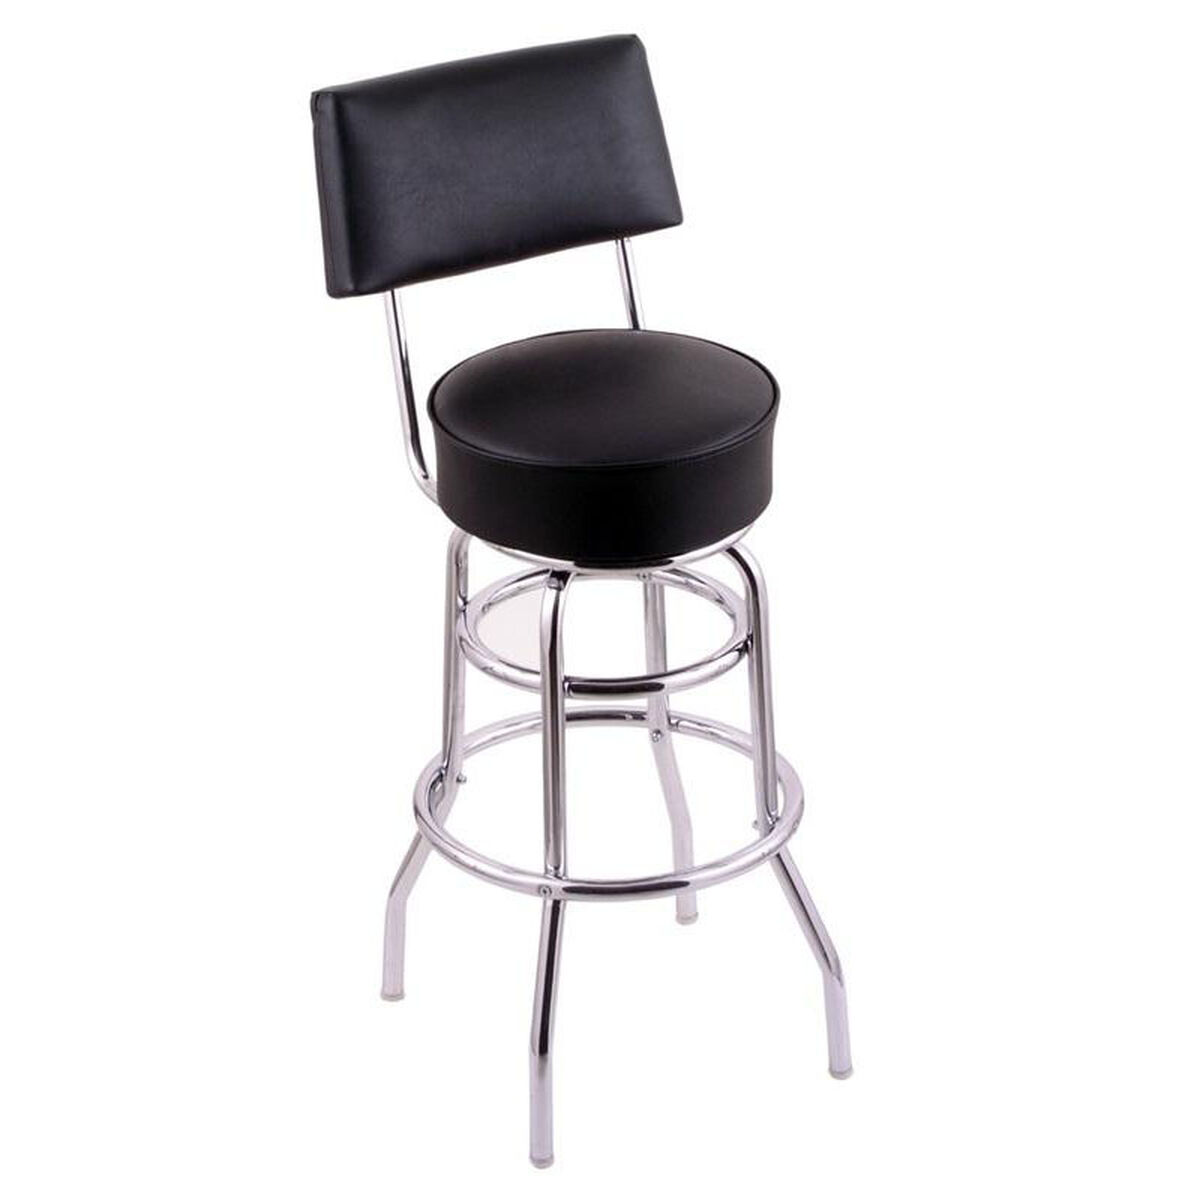 The Holland Bar Stool Co C7C4 HOB C7C425BLKVINYL  : THEHOLLANDBARSTOOLCOC7C4 HOBMAINIMAGE from www.restaurantfurniture4less.com size 1200 x 1200 jpeg 56kB